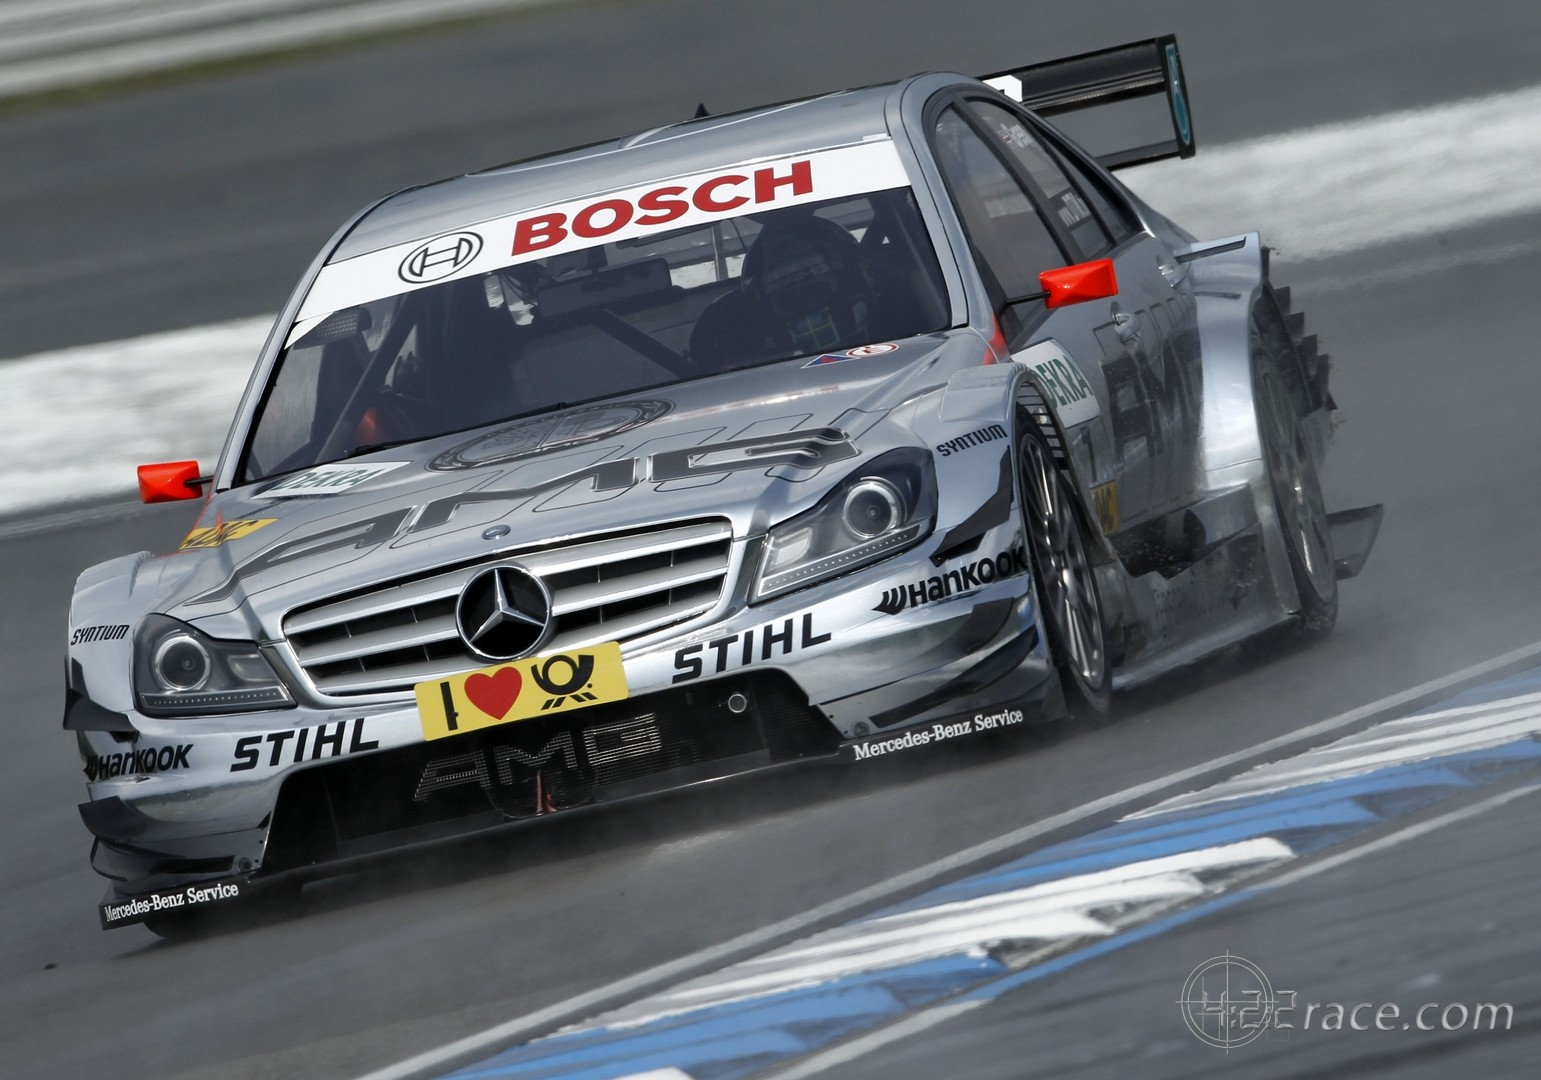 2011 DTM - Mercedes - Jamie Green